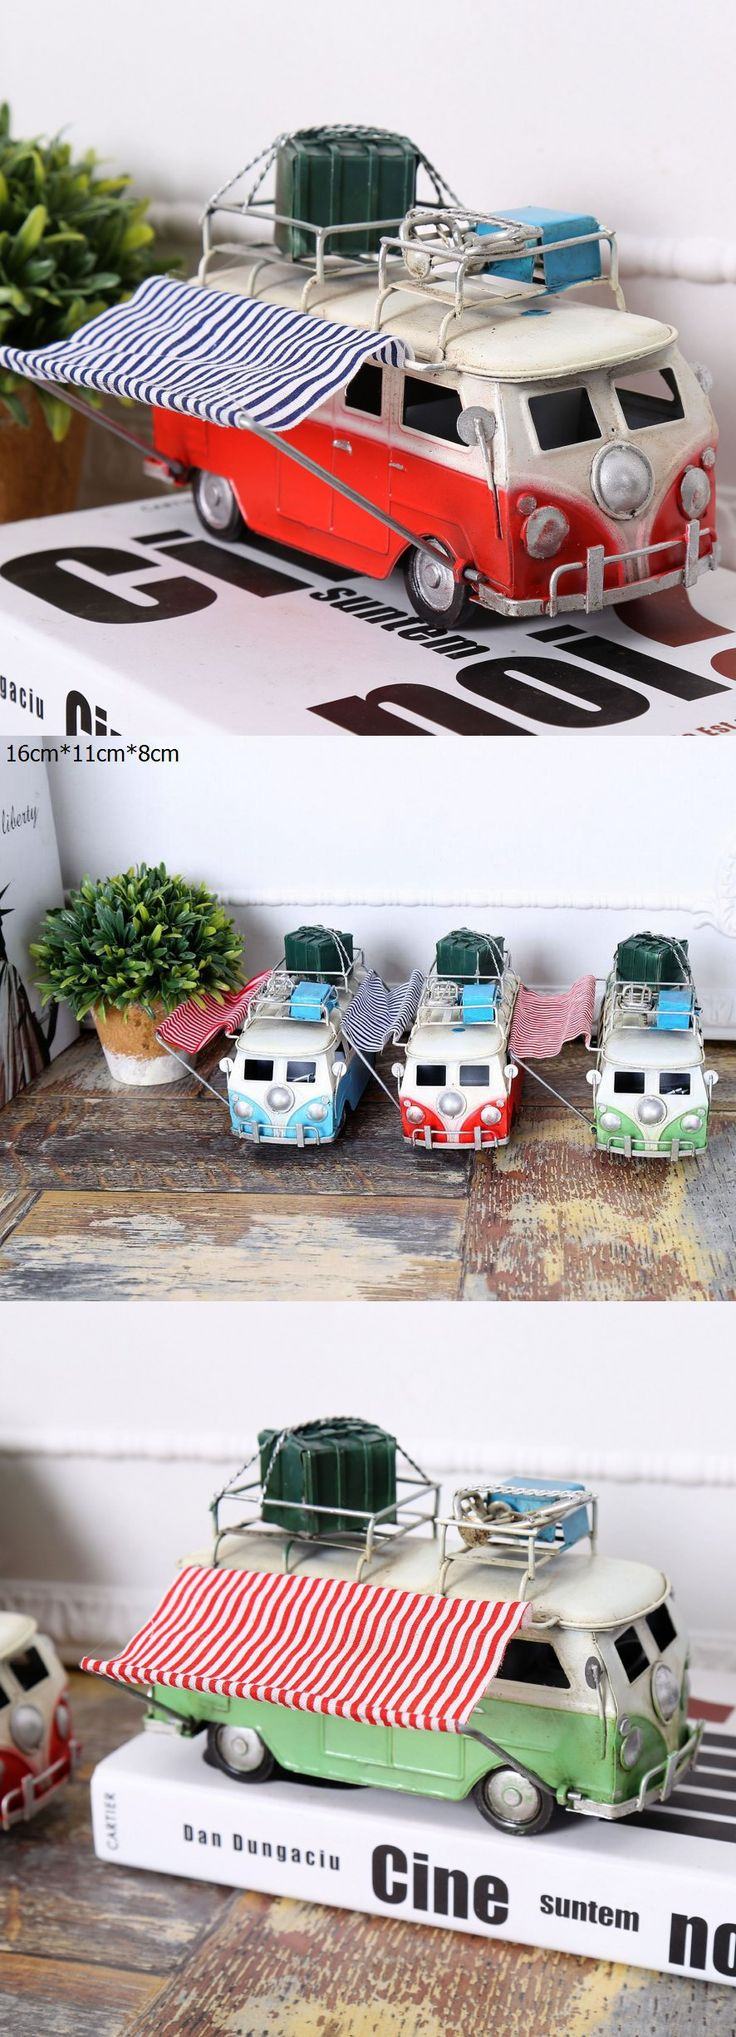 2016 new metal crafts handmade ornaments with canopy bar iron car model